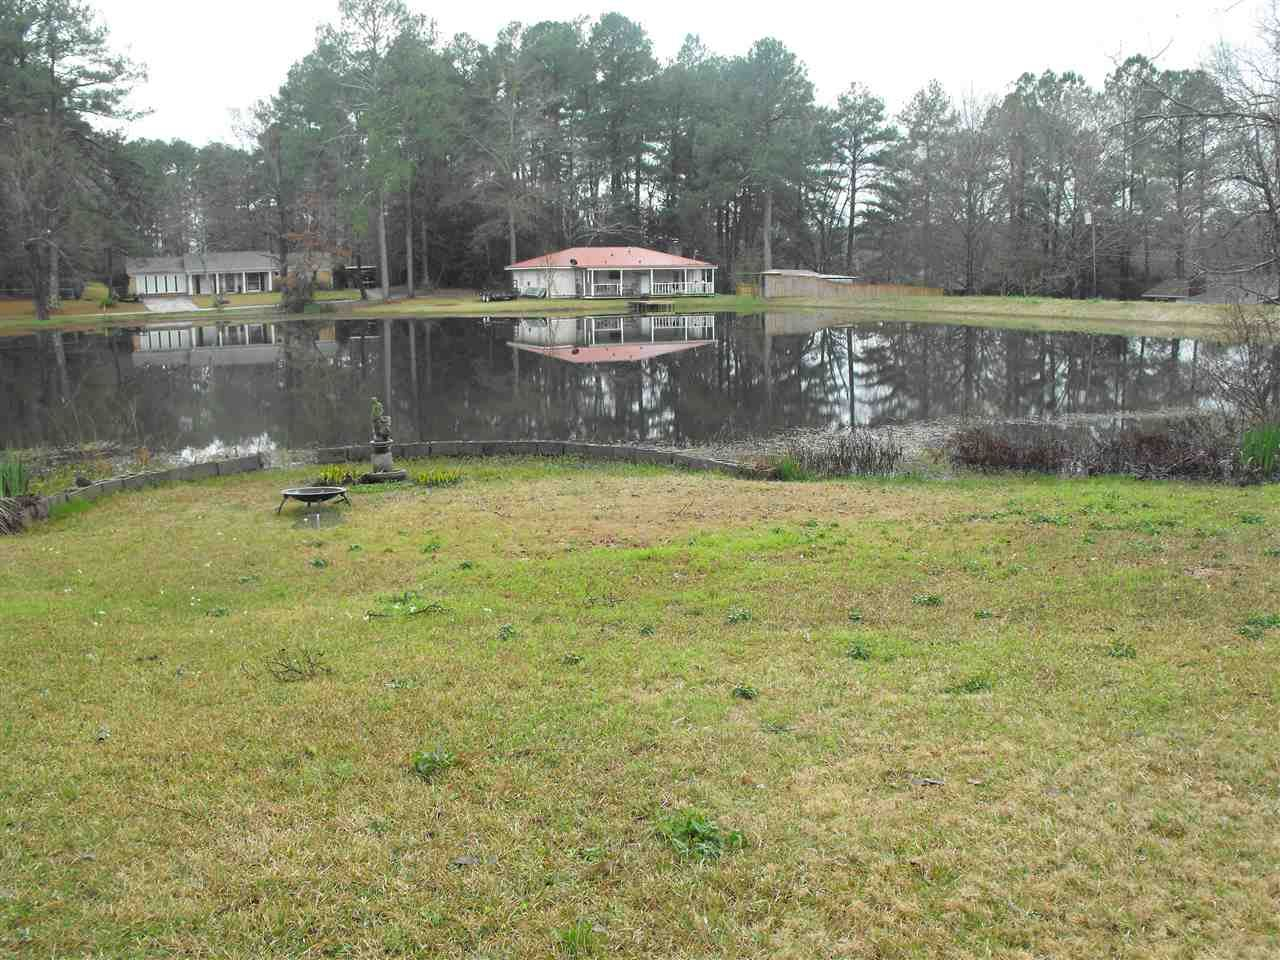 1675 FLORENCE BYRAM RD, Florence, MS 39073 - MLS#: 327018